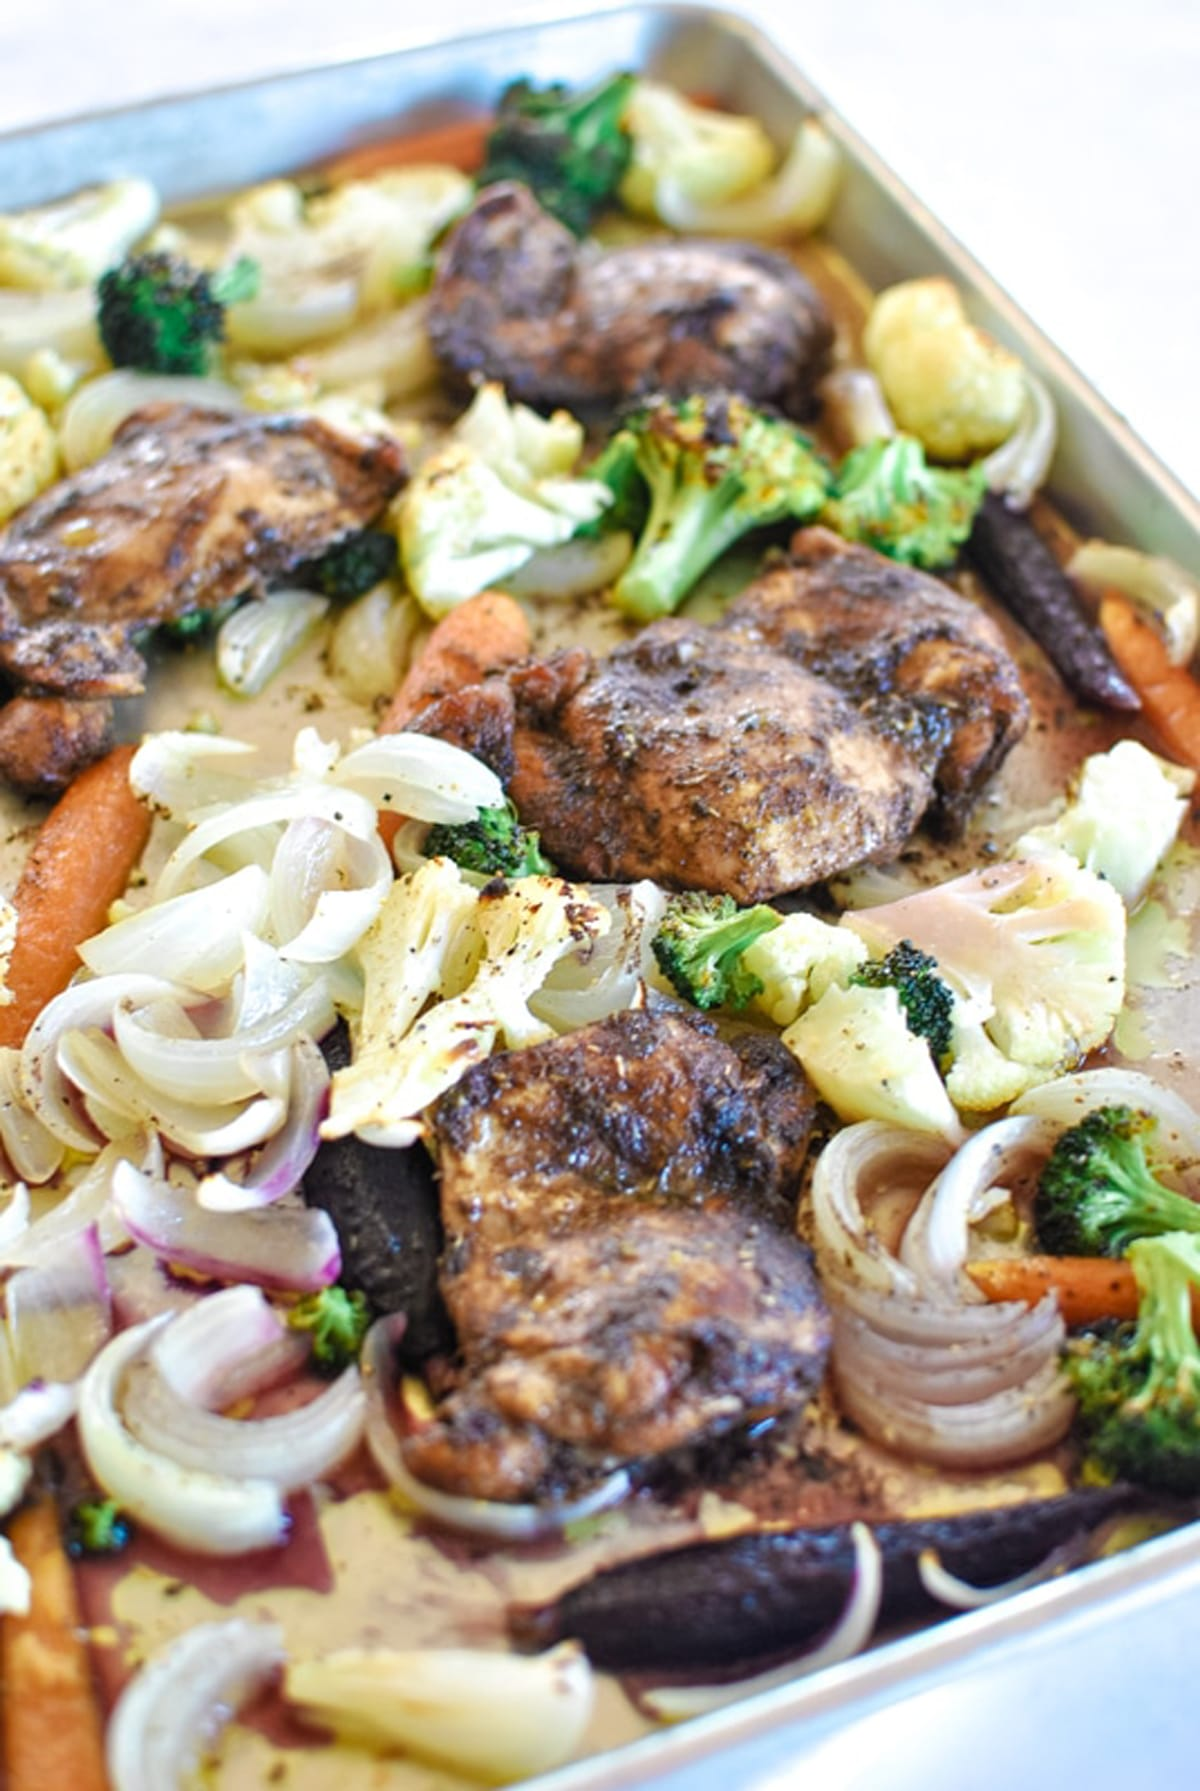 Sheet pan dinner containing baked chicken thighs and vegetables.